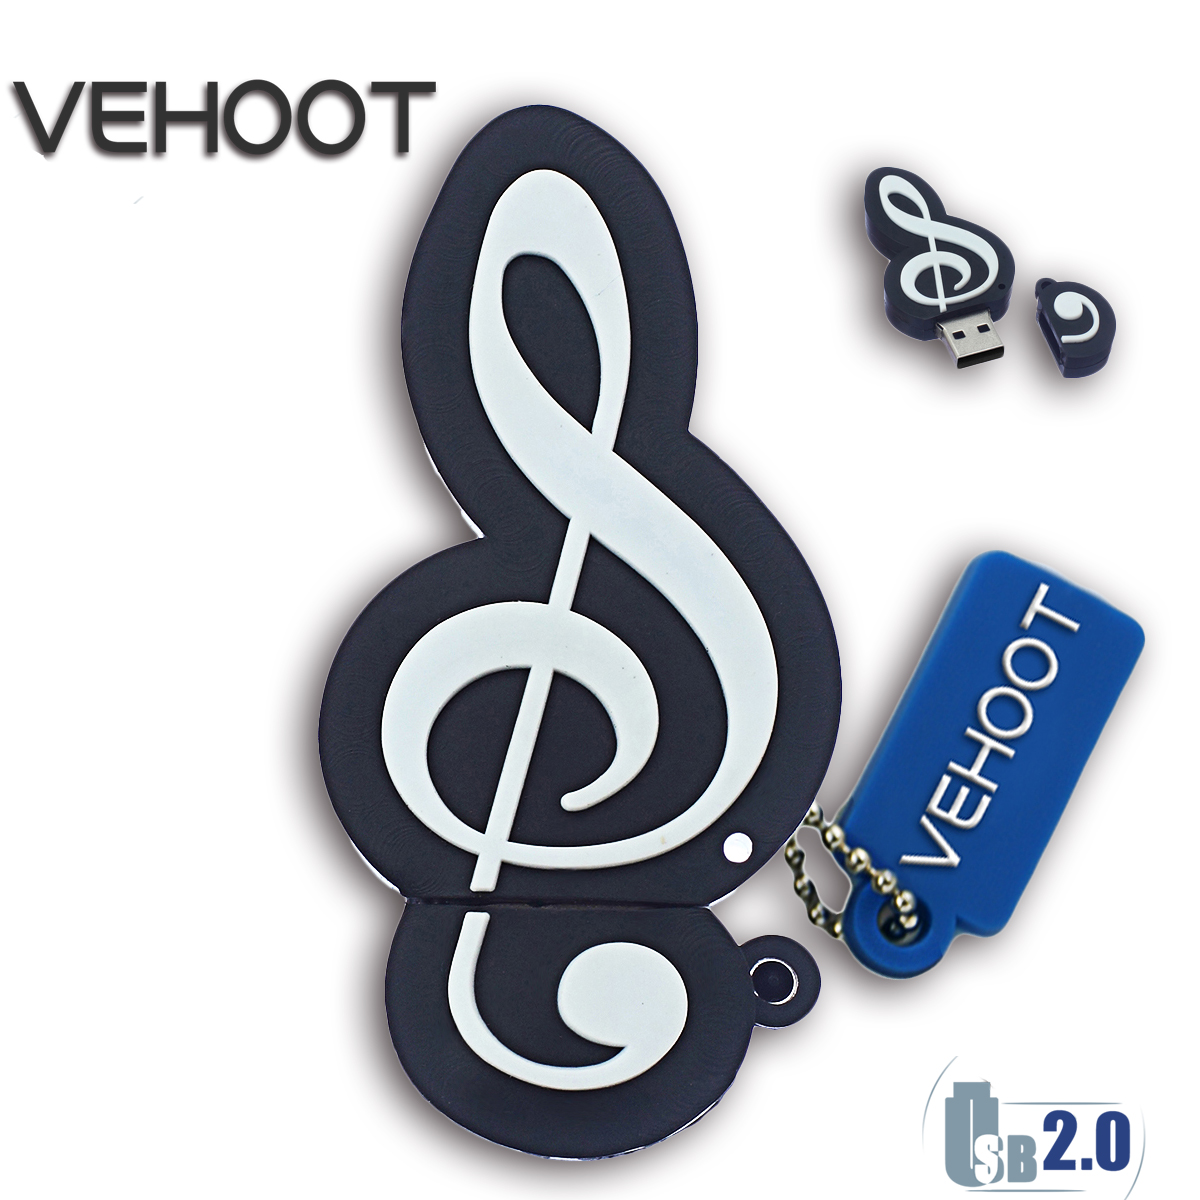 Musical Rhythm Note USB Flash Drive Cartoon Pendrive Memoria Stick Pen Drive 32GB 16GB 8GB 4GB U Disk USB 2.0 Stick VEHOOT 2016(China (Mainland))